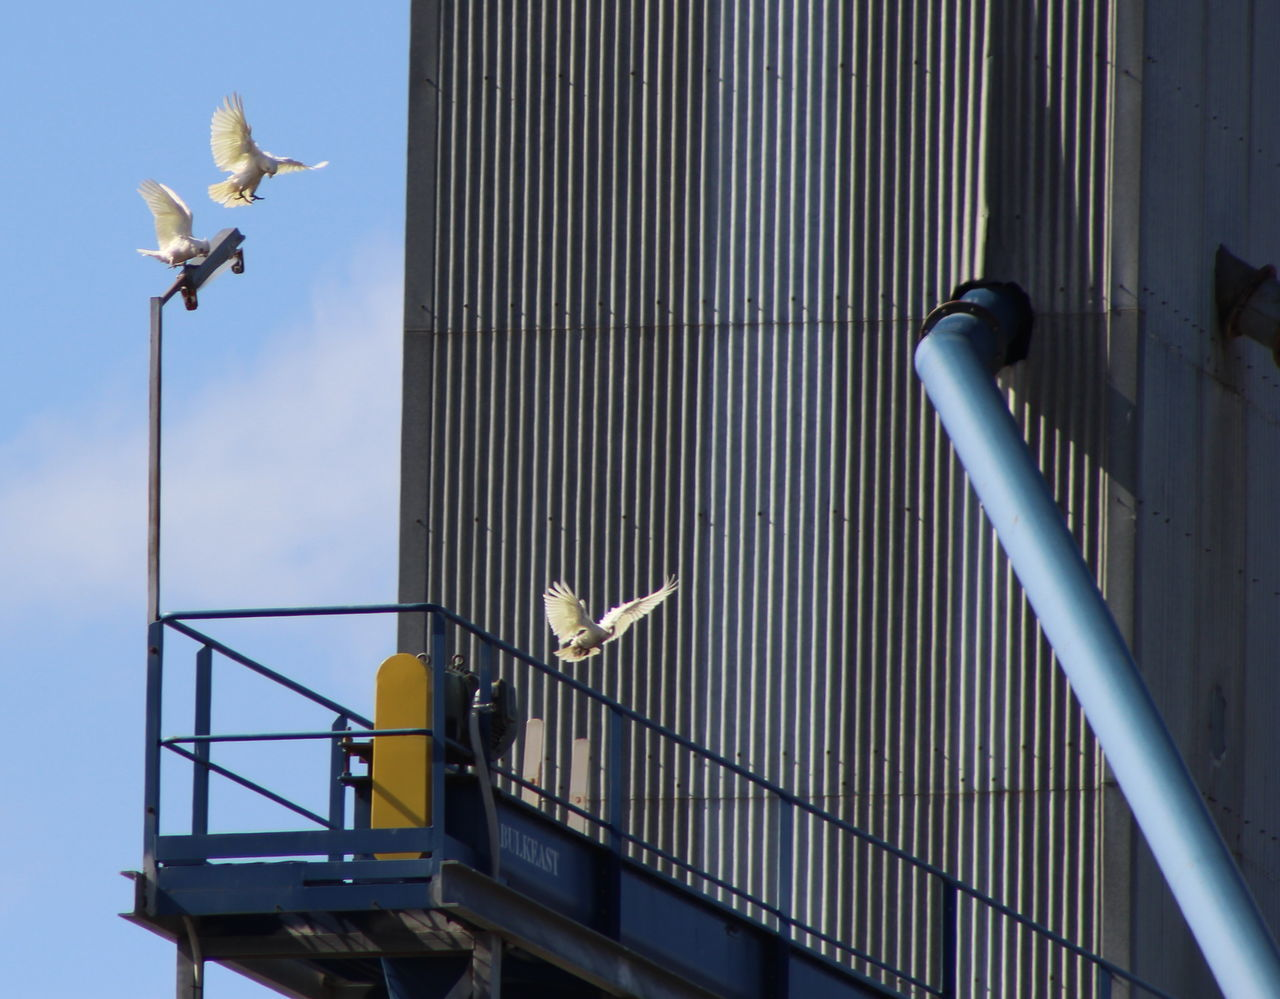 Beautiful stock photos of industrial, Animal Themes, Animals In The Wild, Architecture, Bird